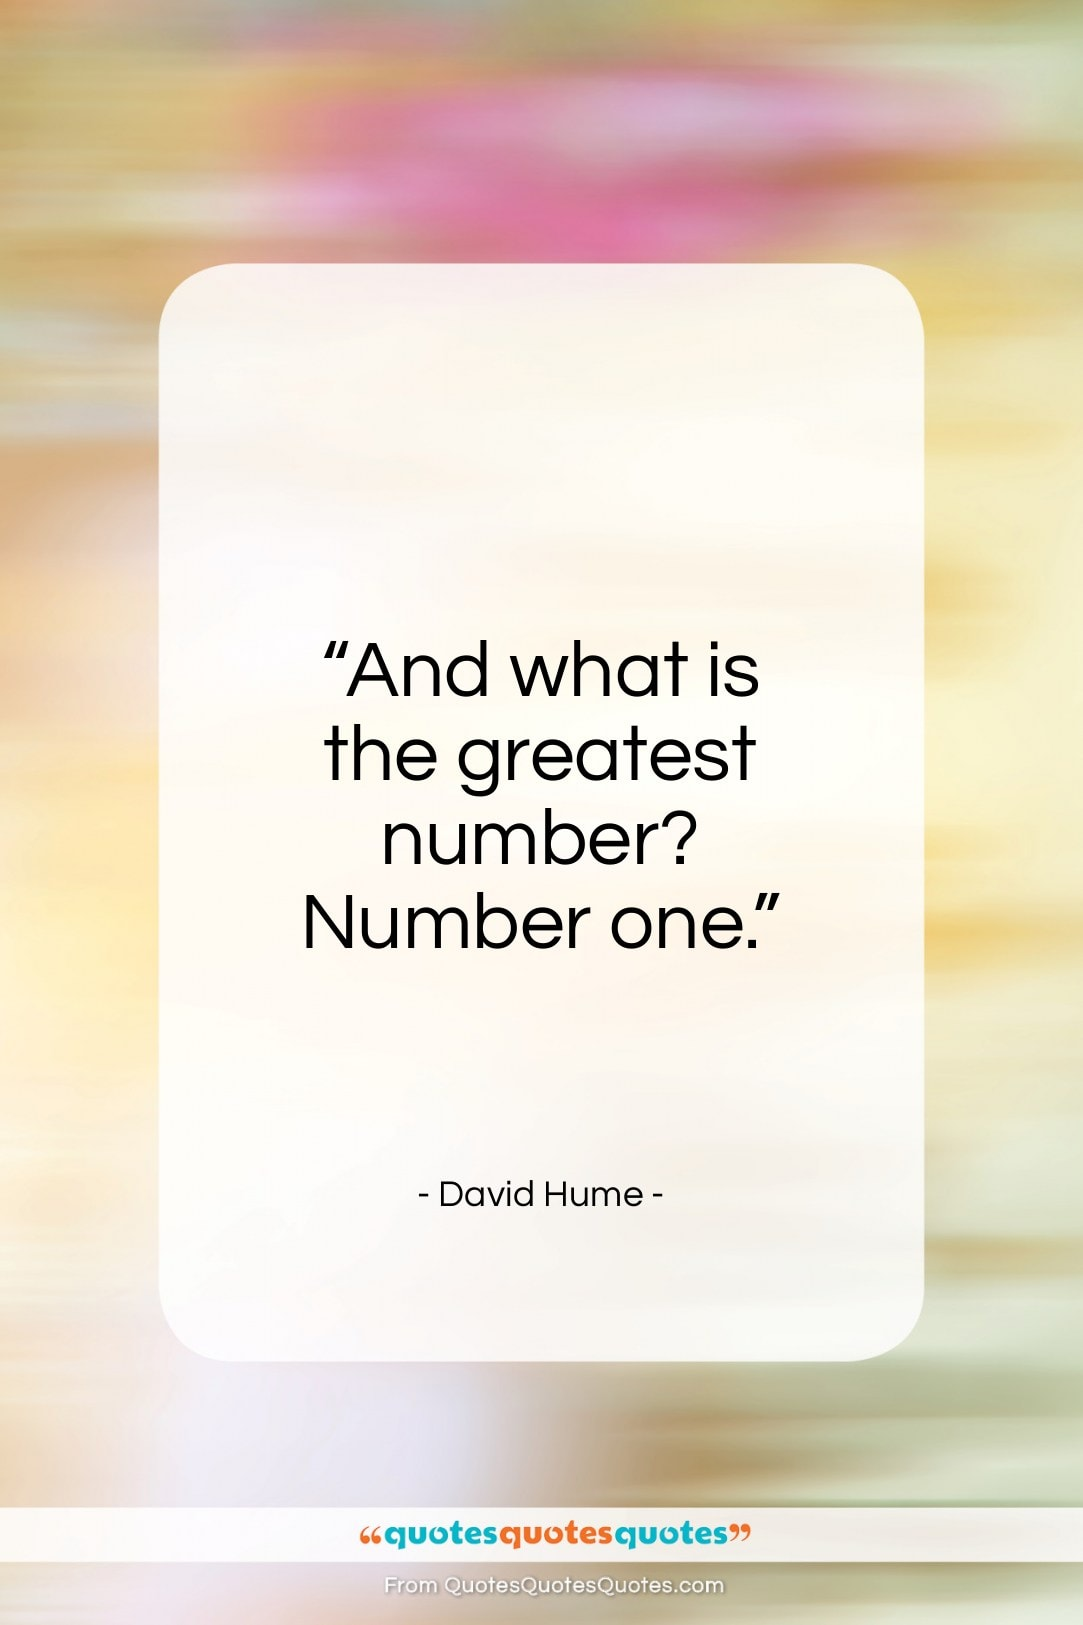 """David Hume quote: """"And what is the greatest number? Number one.""""- at QuotesQuotesQuotes.com"""